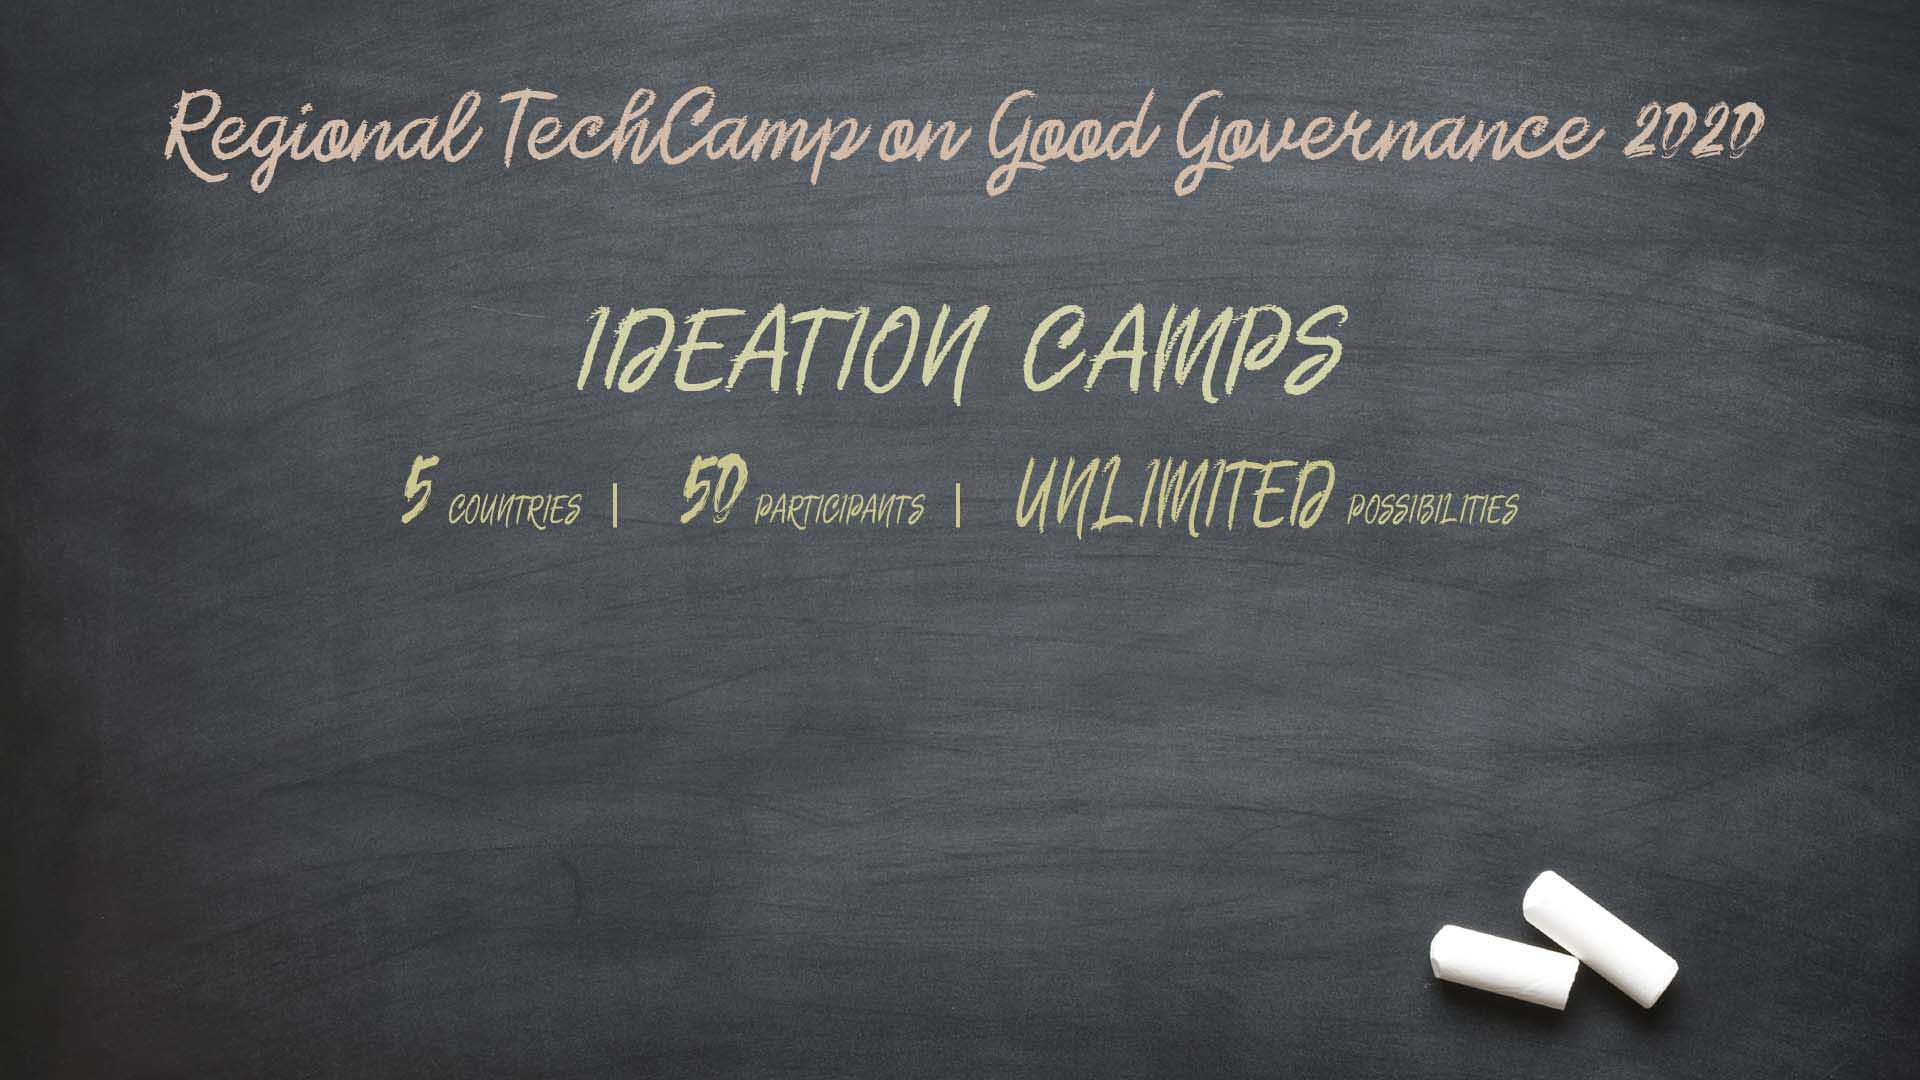 Inaugural Ideation Camp